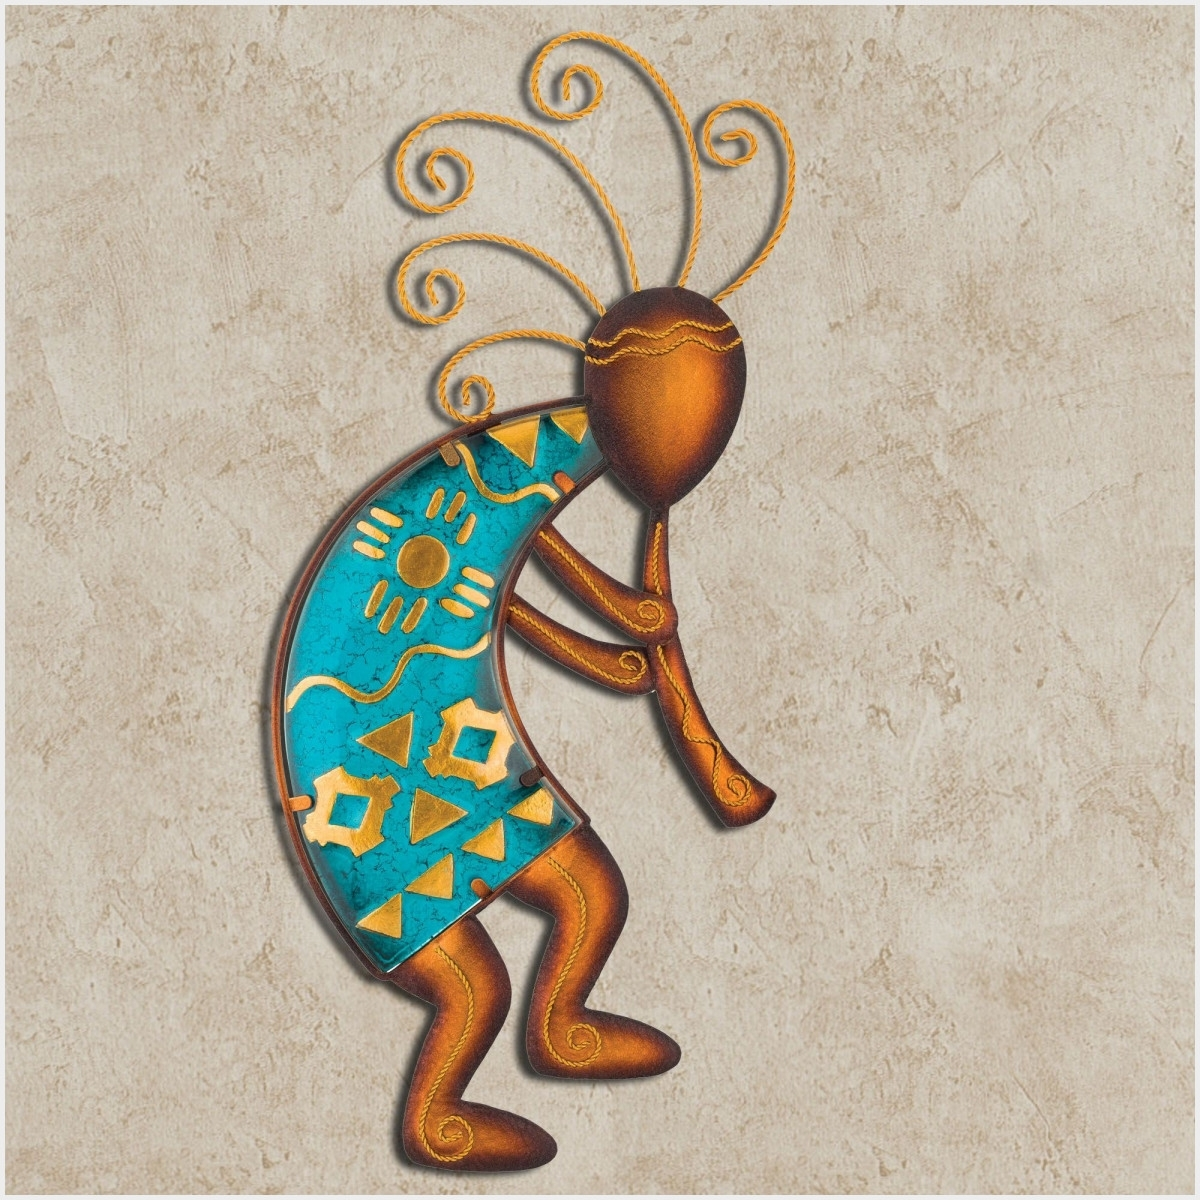 35 Inspirational Kokopelli Metal Wall Art – Wall Decoration And Design Within Famous Kokopelli Metal Wall Art (View 1 of 15)